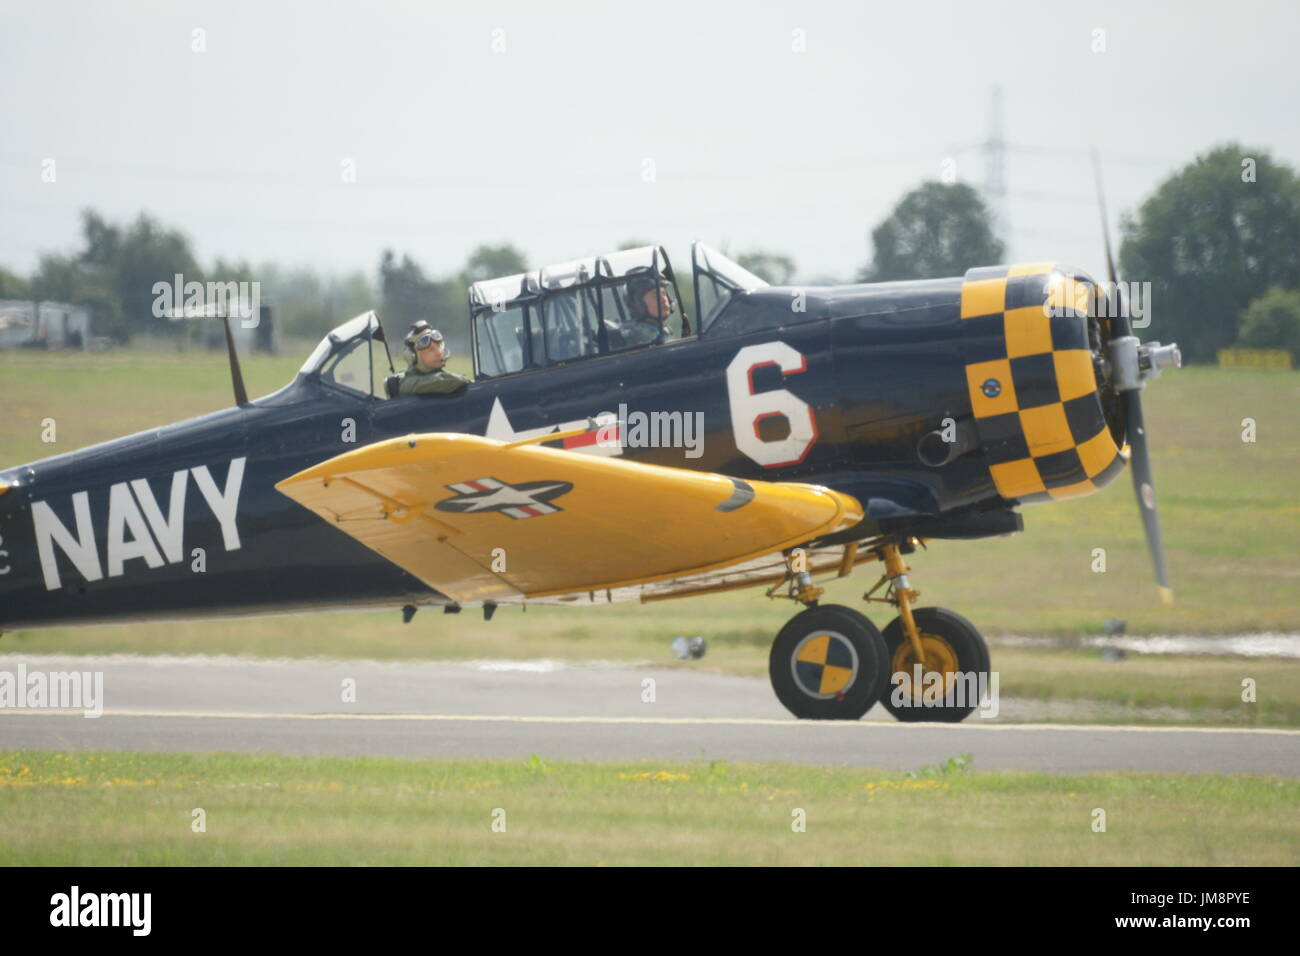 North American Aviation T-6 Texan, single-engined WW2 advanced trainer aircraft - Stock Image